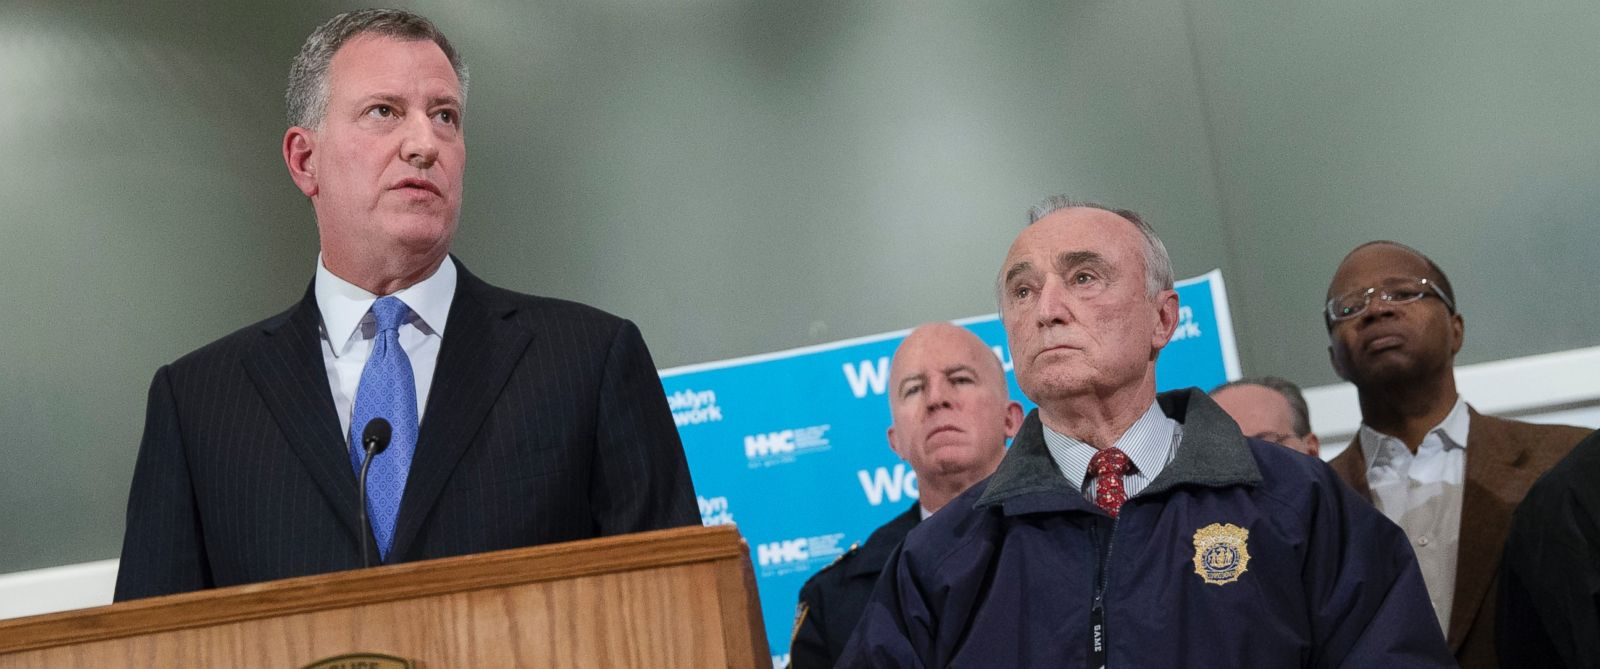 PHOTO: New York City Mayor Bill de Blasio, left, speaks alongside NYPD Commissioner Bill Bratton, right, during a news conference at Woodhull Medical Center, Saturday, Dec. 20, 2014, in New York.